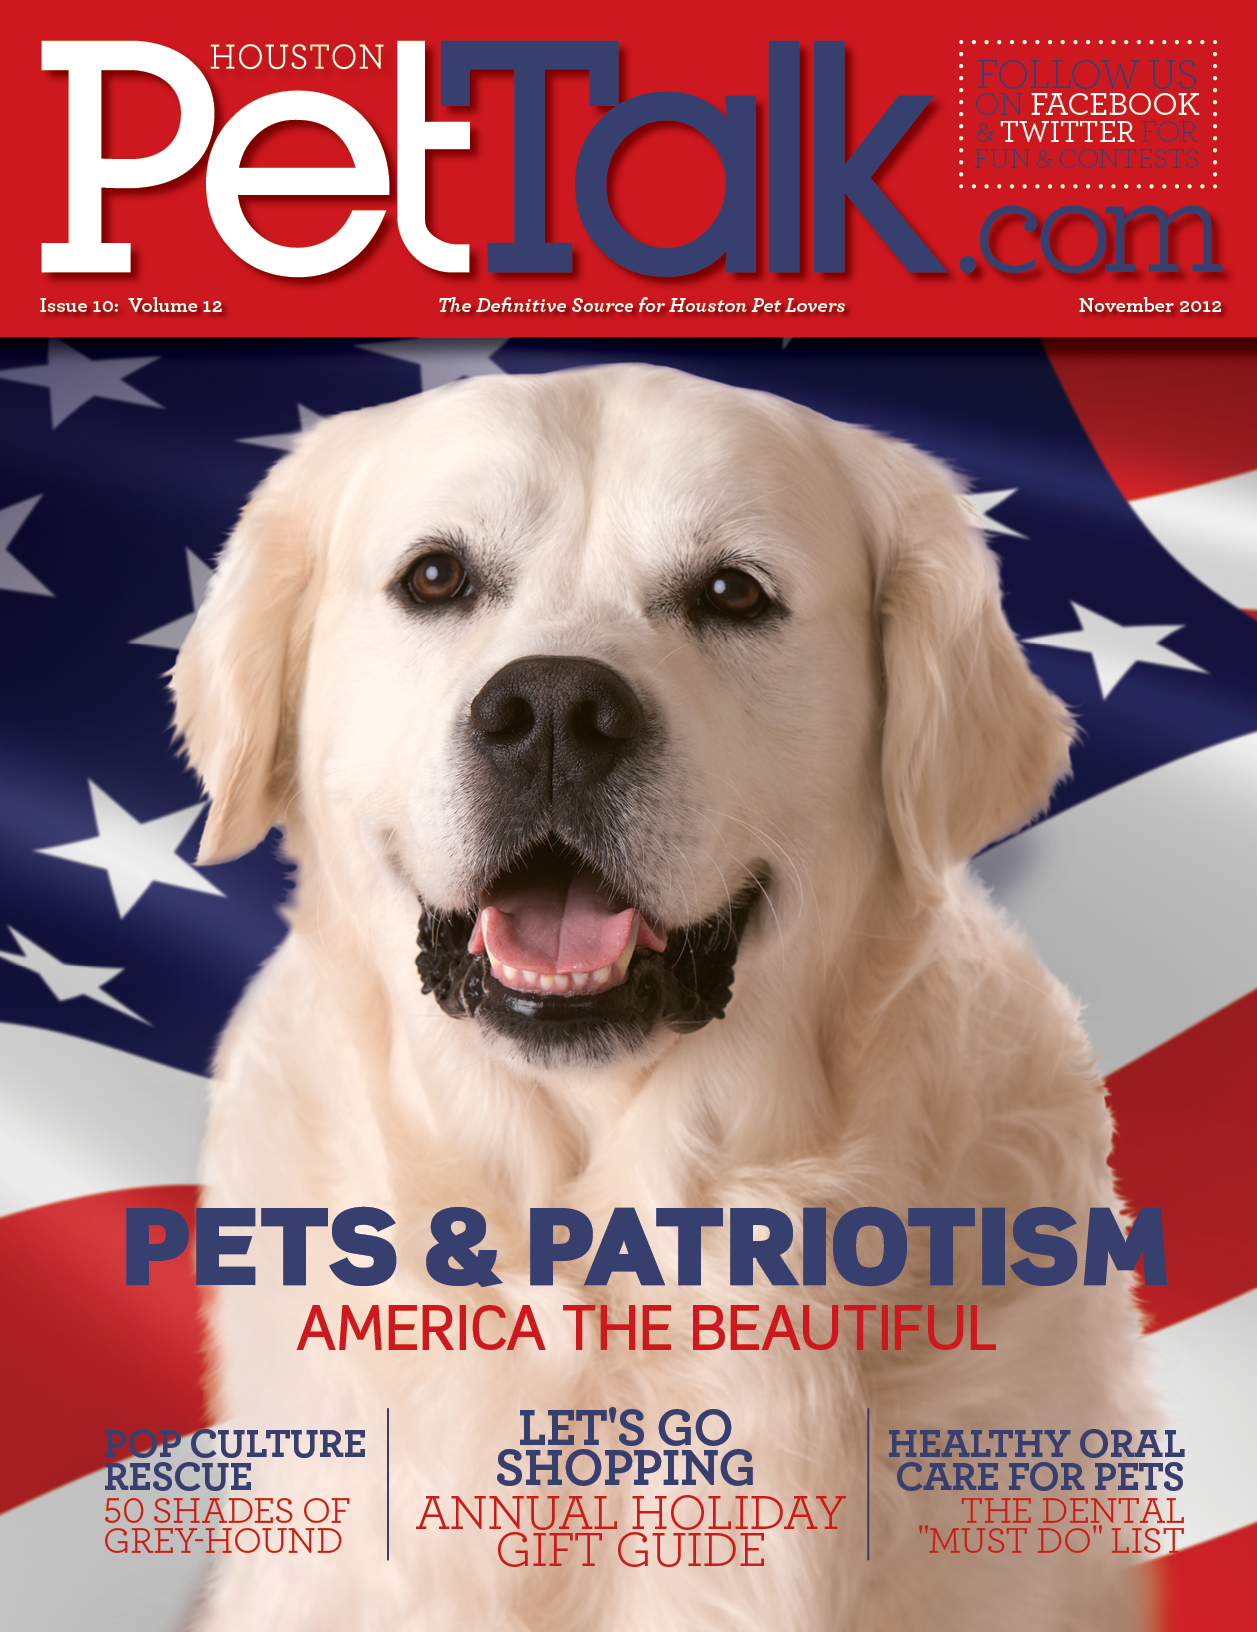 November 2012 Digital Issue of Houston PetTalk